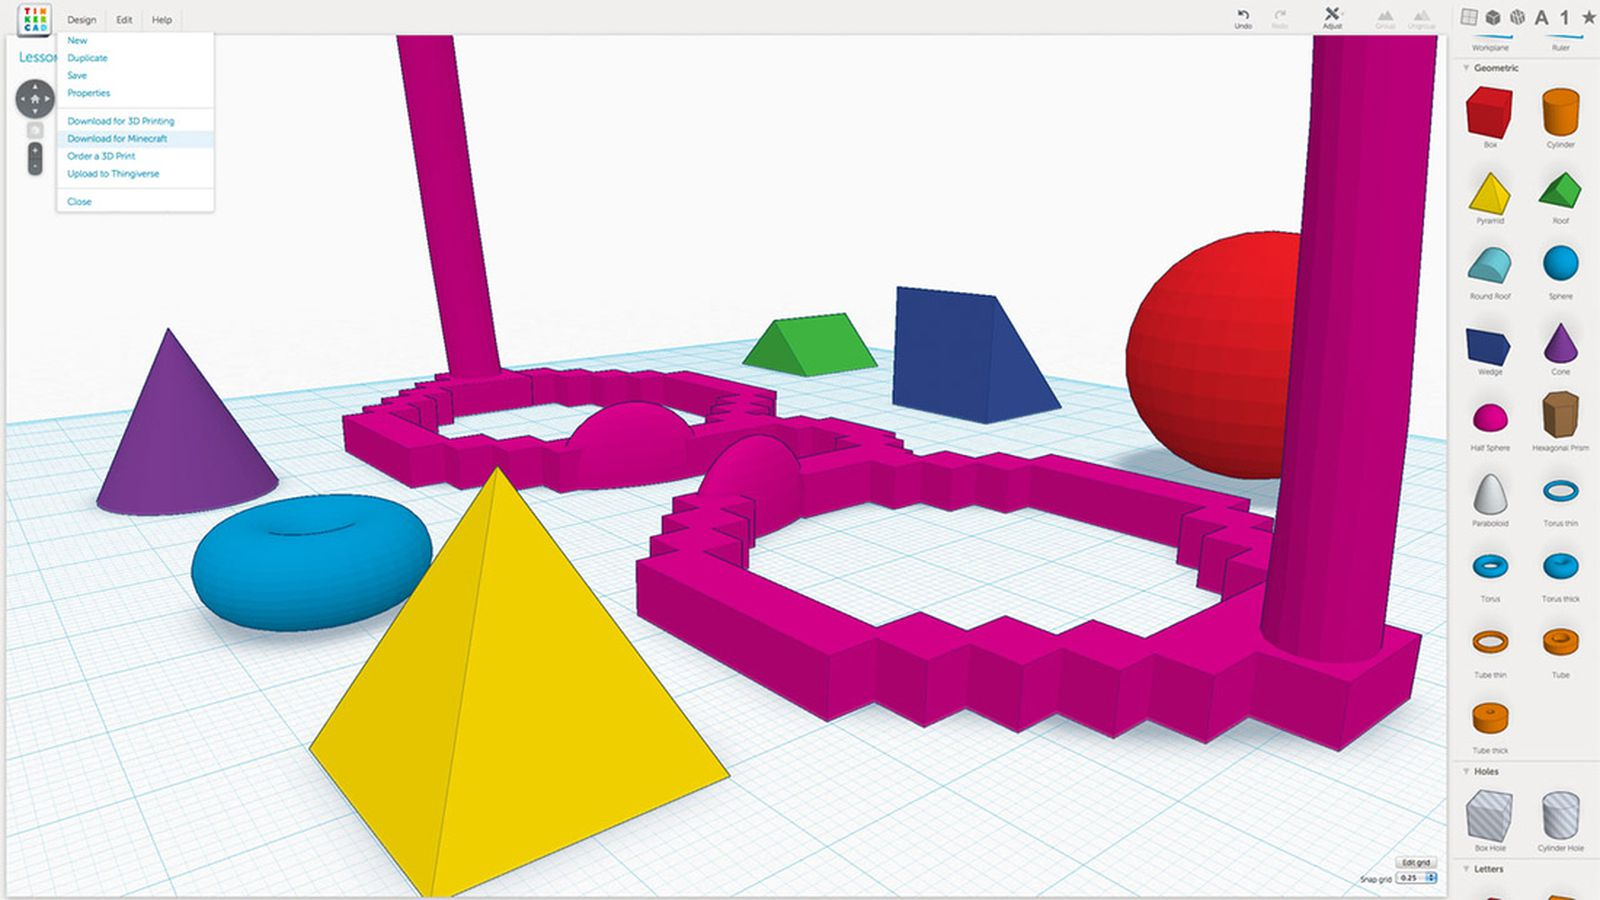 Free 3d Design App Tinkercad Adds Fast Simple Minecraft